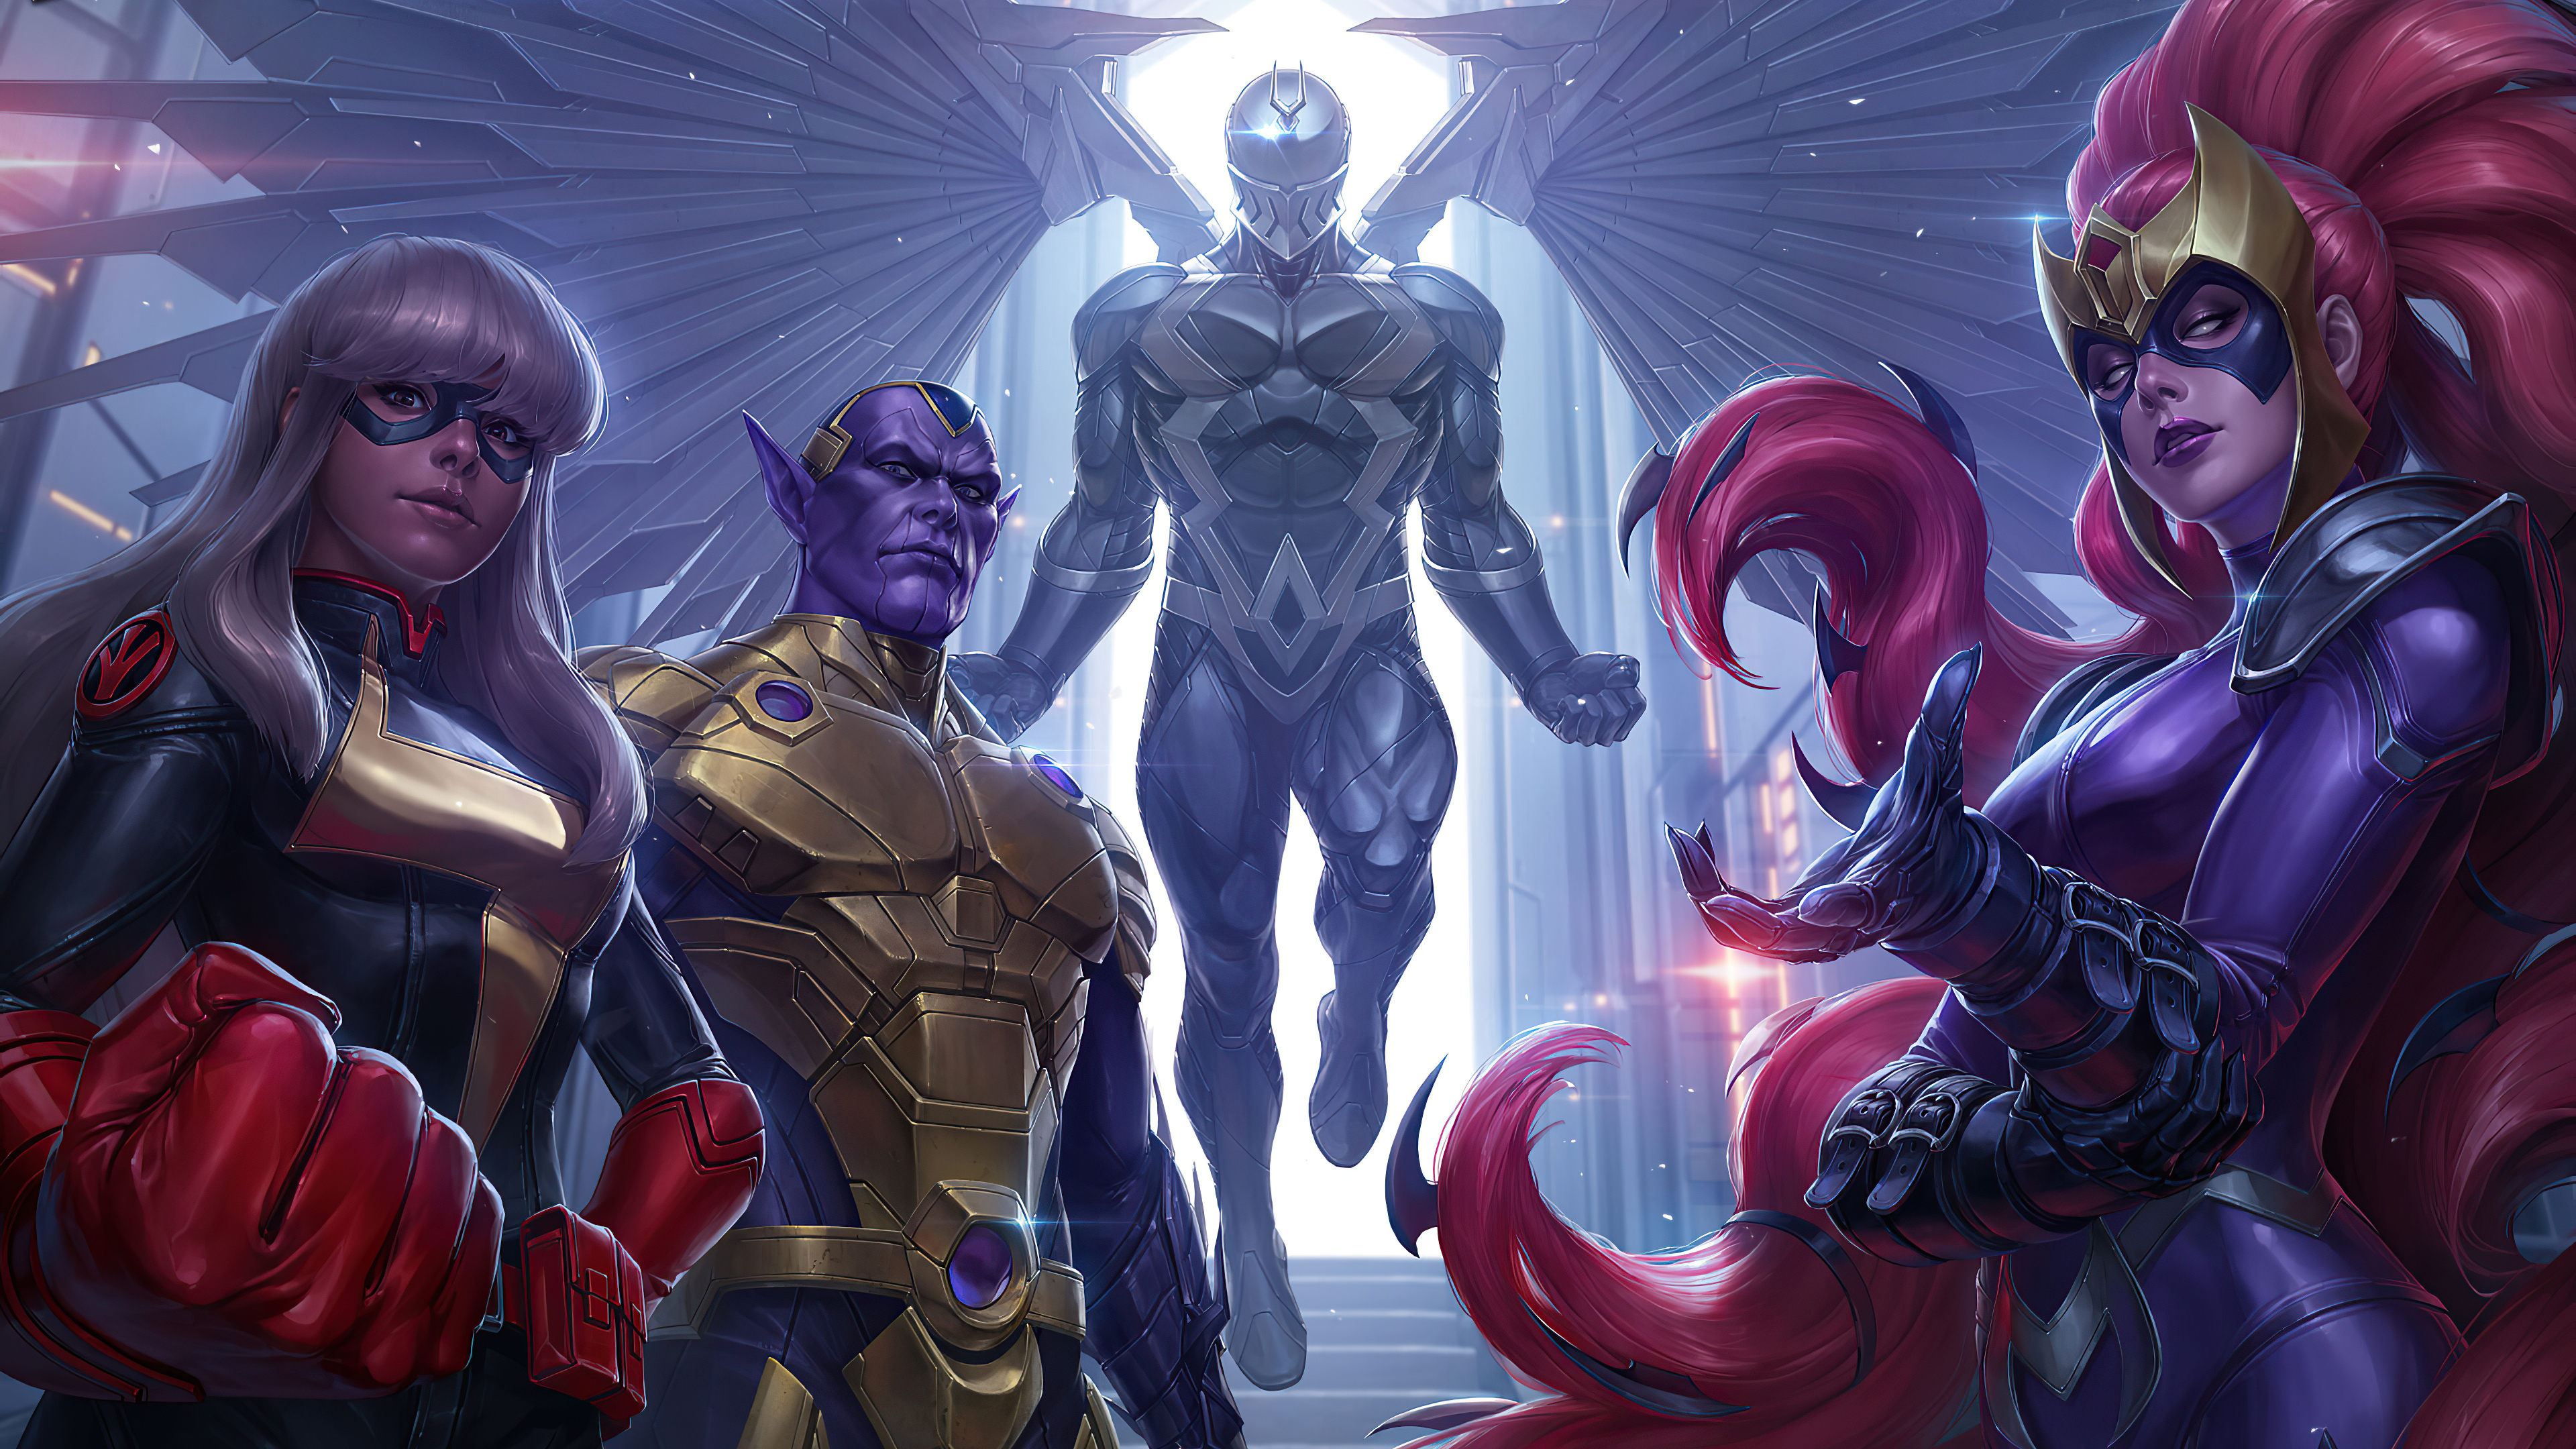 1336x768 4k Marvel Future Fight 2020 Hd Laptop Wallpaper Hd Games 4k Wallpapers Images Photos And Background